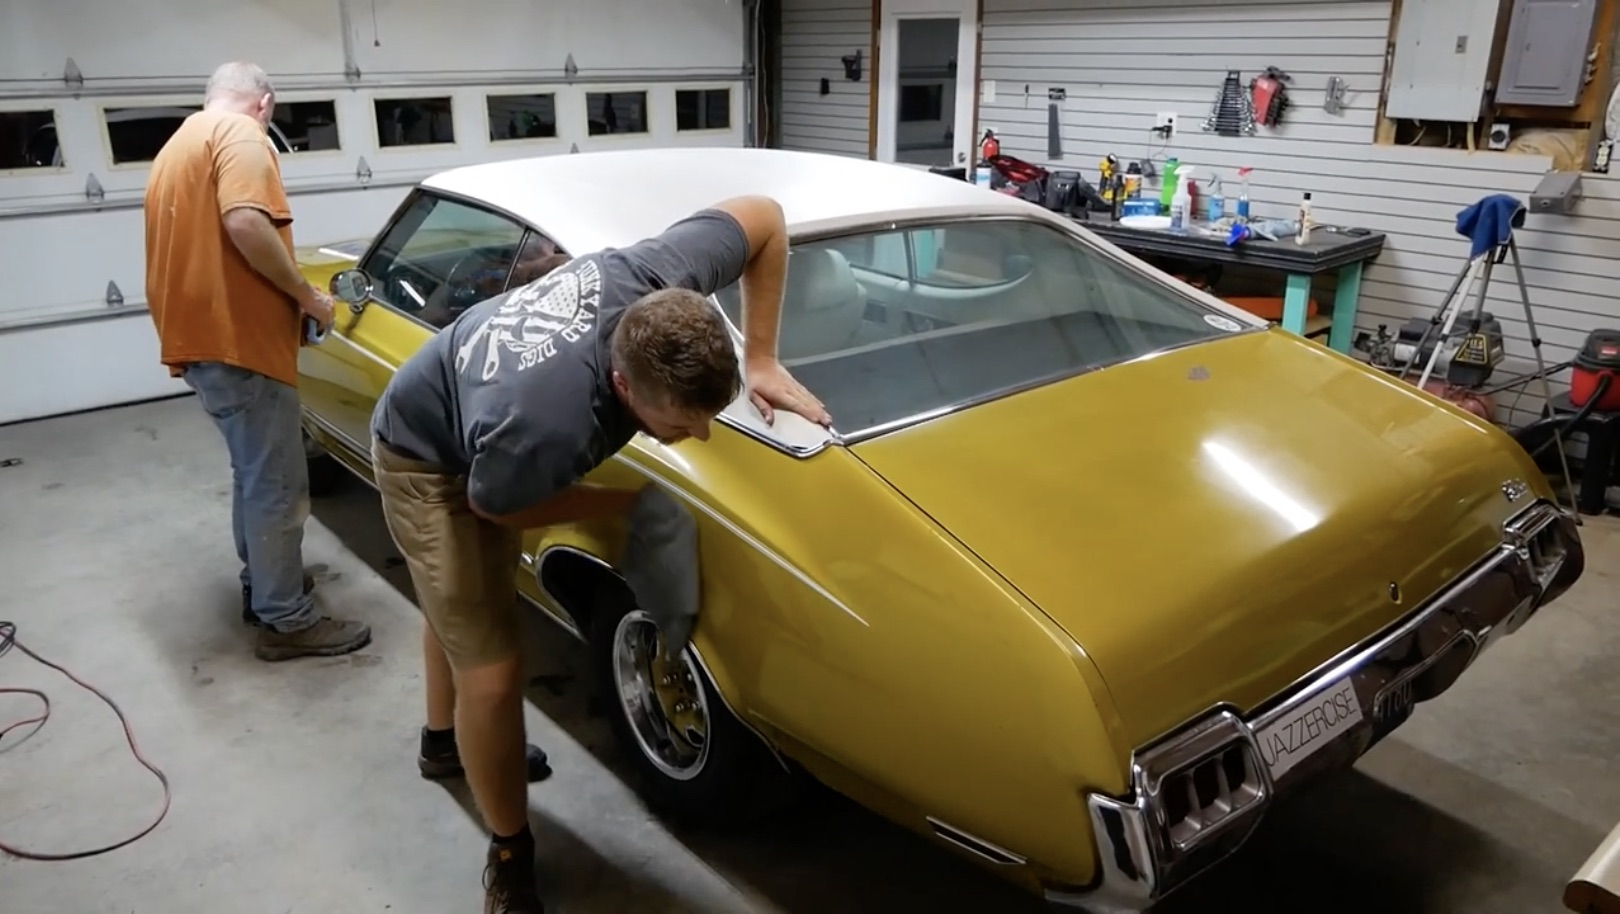 Polishing Up The Gold Nugget: Buffing Out The Storage-Shed 1972 Cutlass